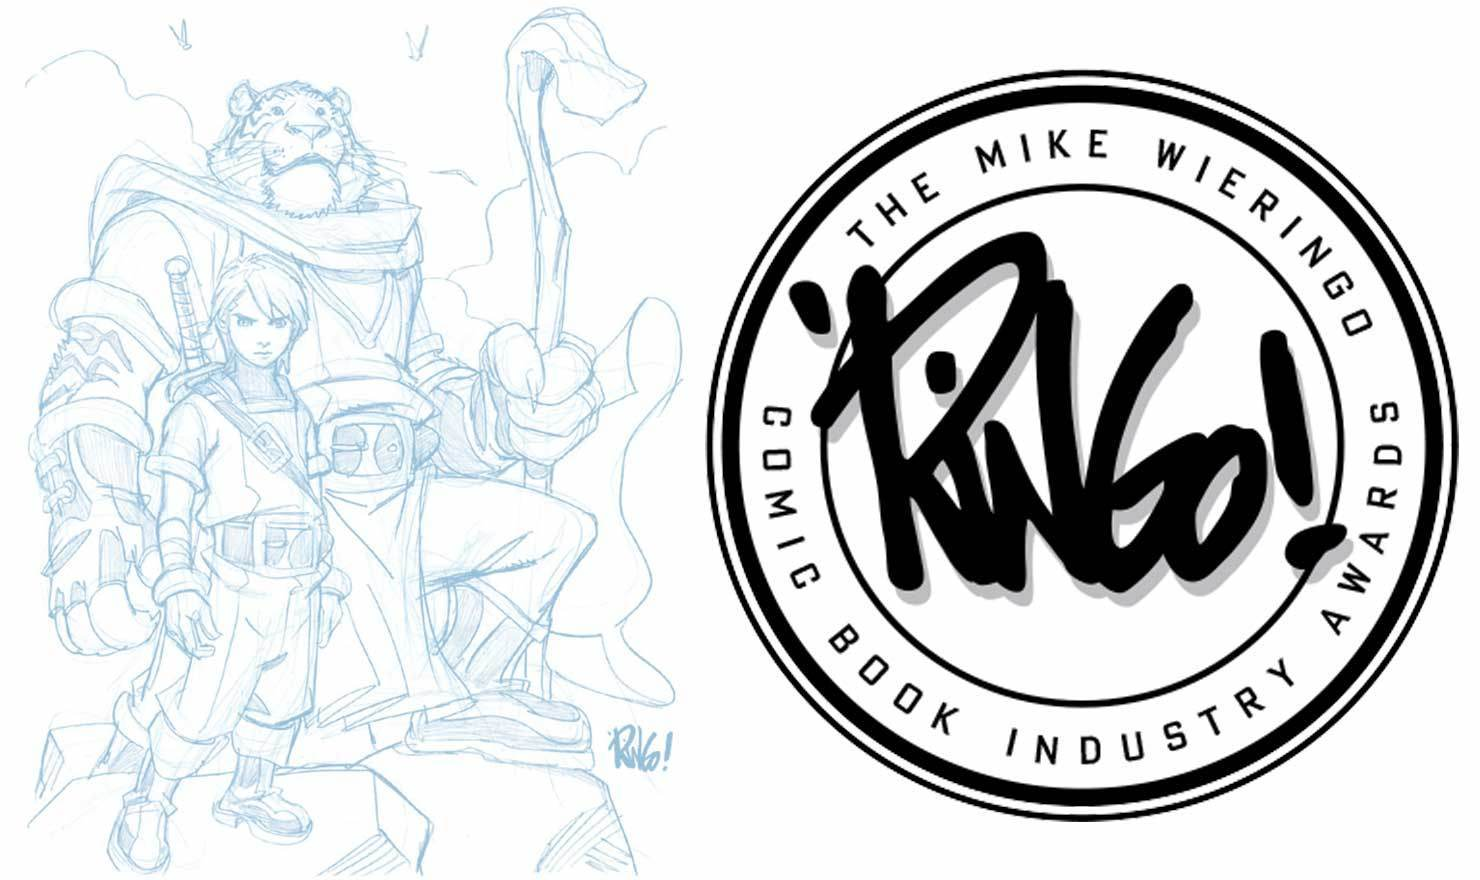 Congratulations To Our 2017 Mike Wieringo Comic Book Industry Awards Nominees